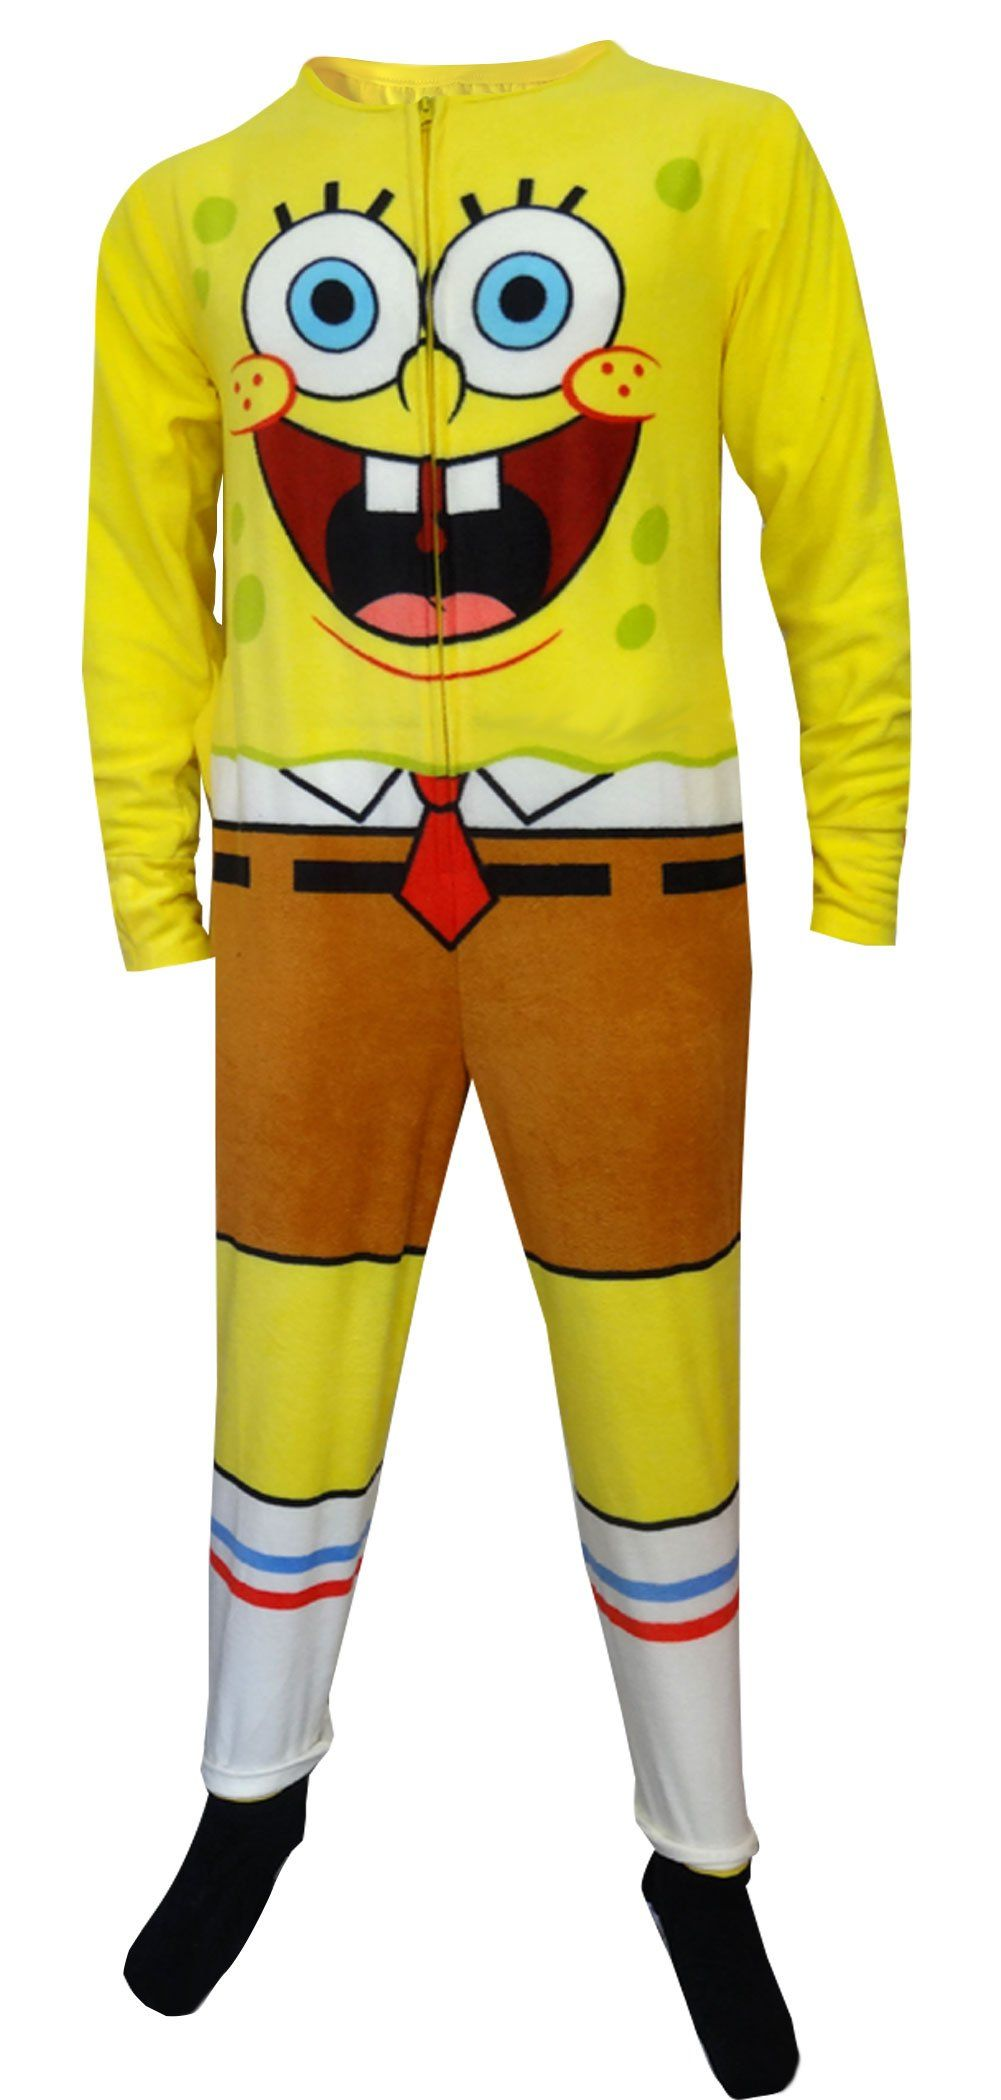 367b54b845 Amazon.com  SpongeBob Squarepants Adult Onesie Pajama for men  Clothing